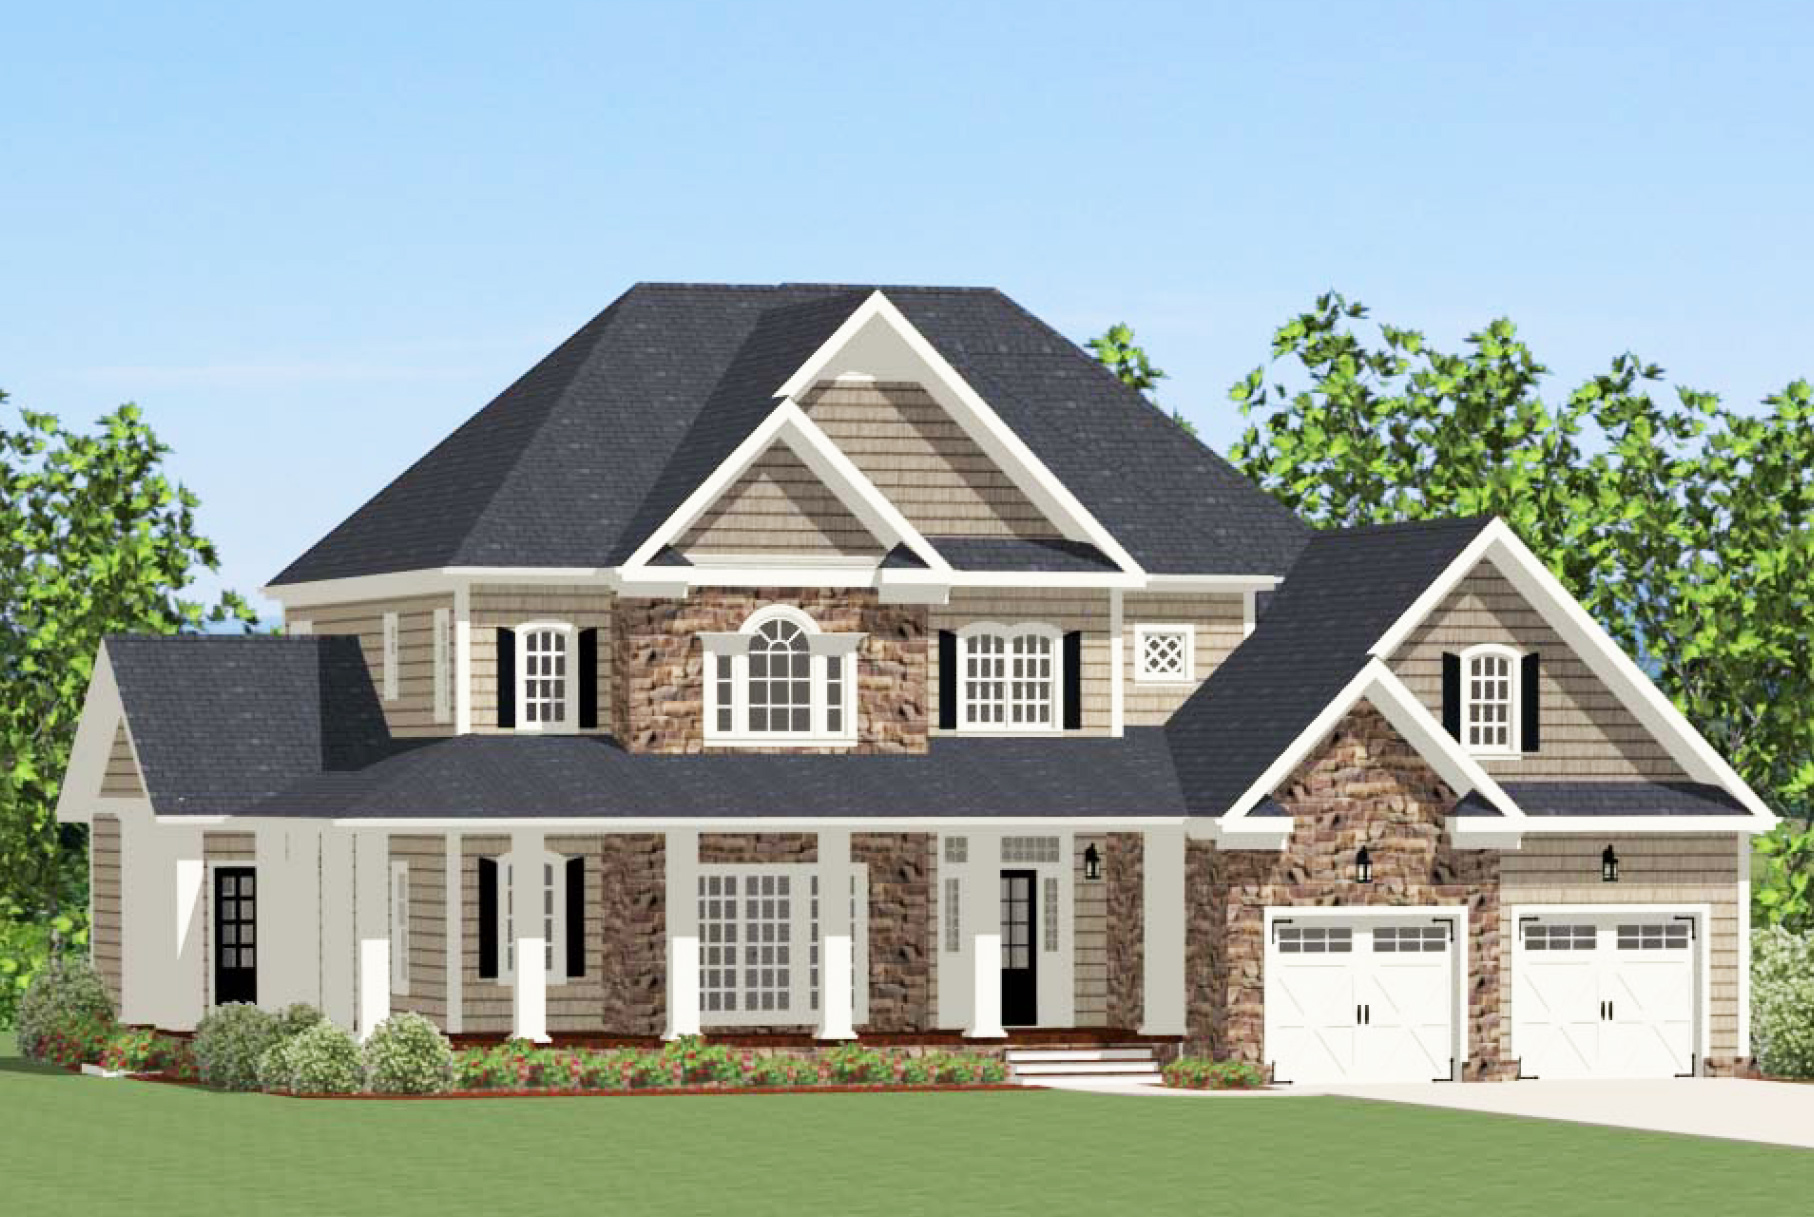 Grand traditional house plan 46263la architectural for Traditional farmhouse plans